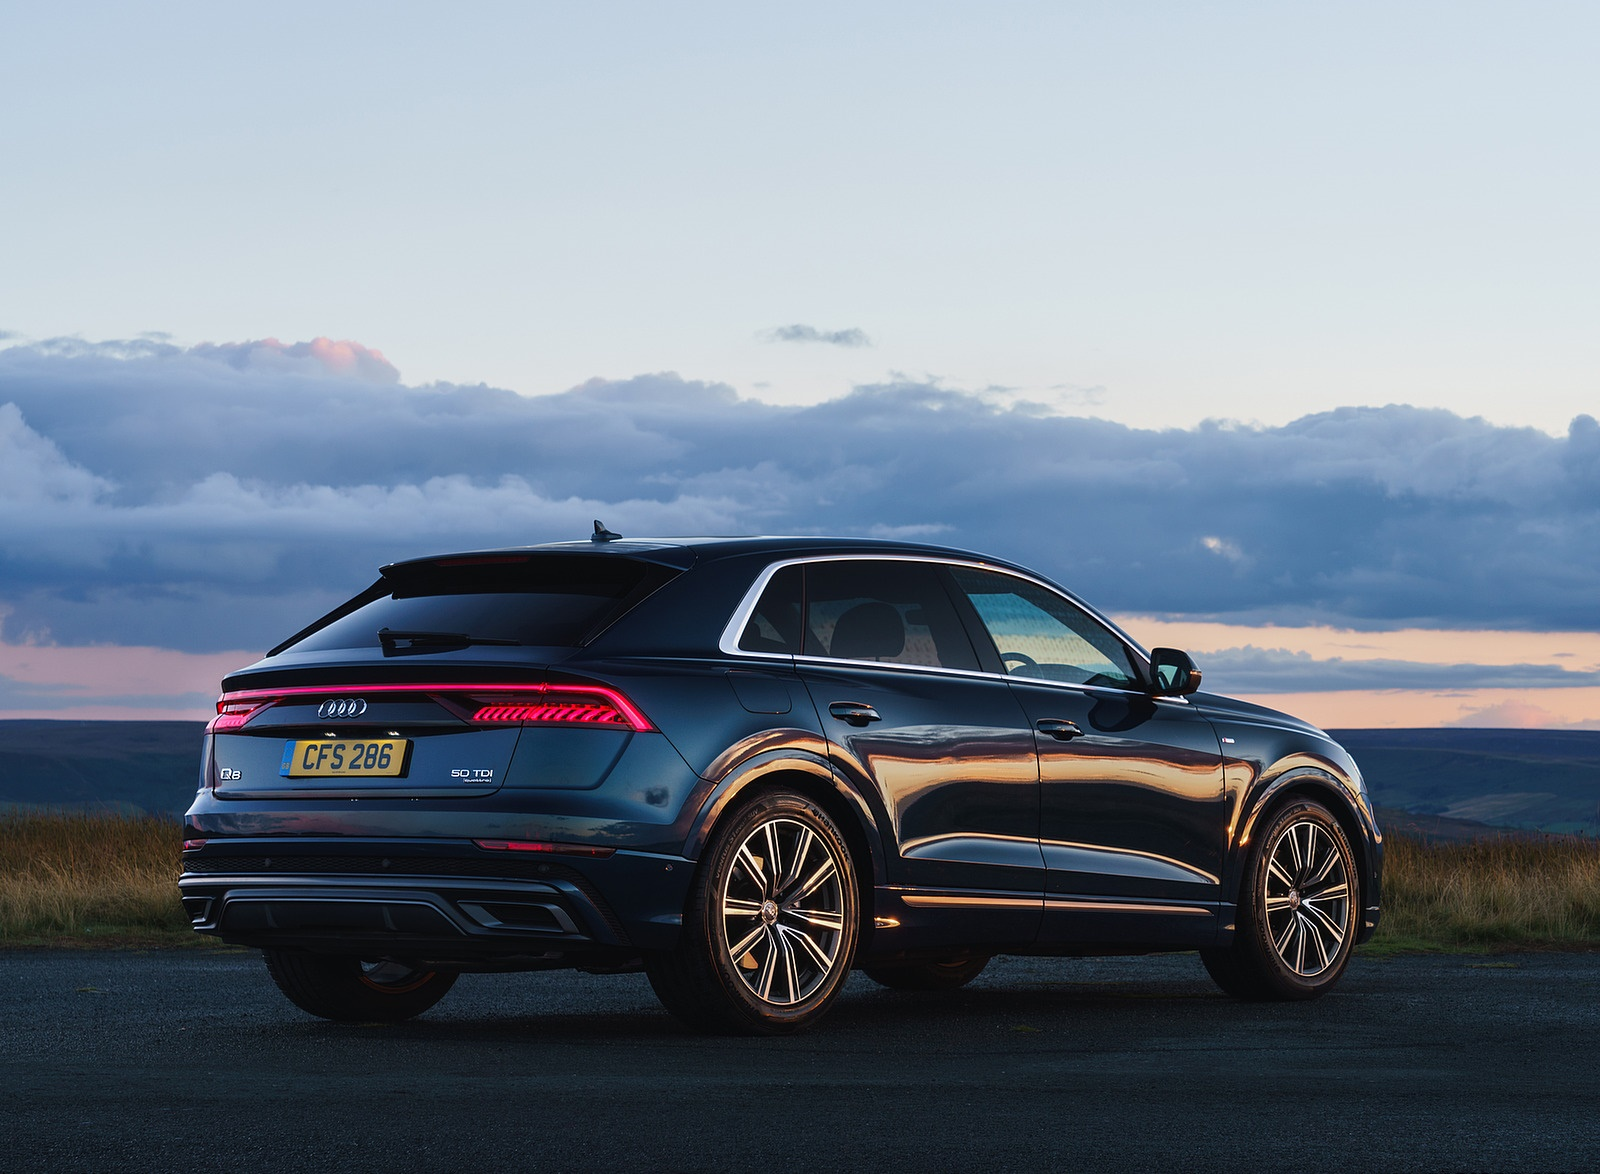 2019 Audi Q8 S Line 50 TDI Quattro (UK-Spec) Rear Three-Quarter Wallpaper (13)